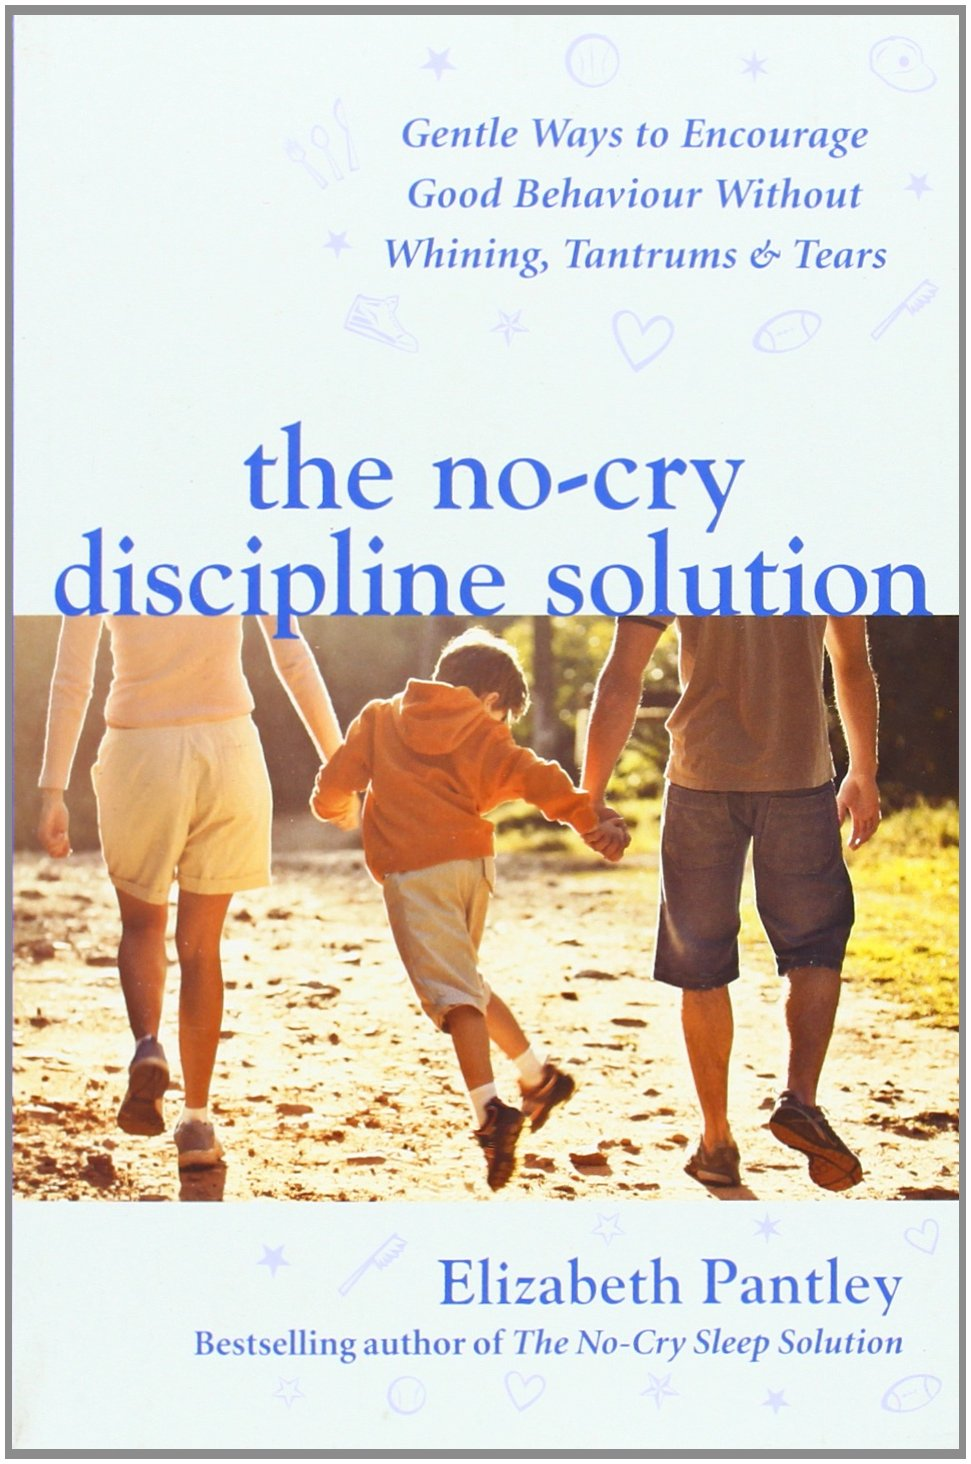 The No-Cry Discipline Solution. Gentle Ways to Encourage Good Behaviour Without Whining, Tantrums and Tears (UK Professional General Reference General Reference) PDF ePub fb2 ebook